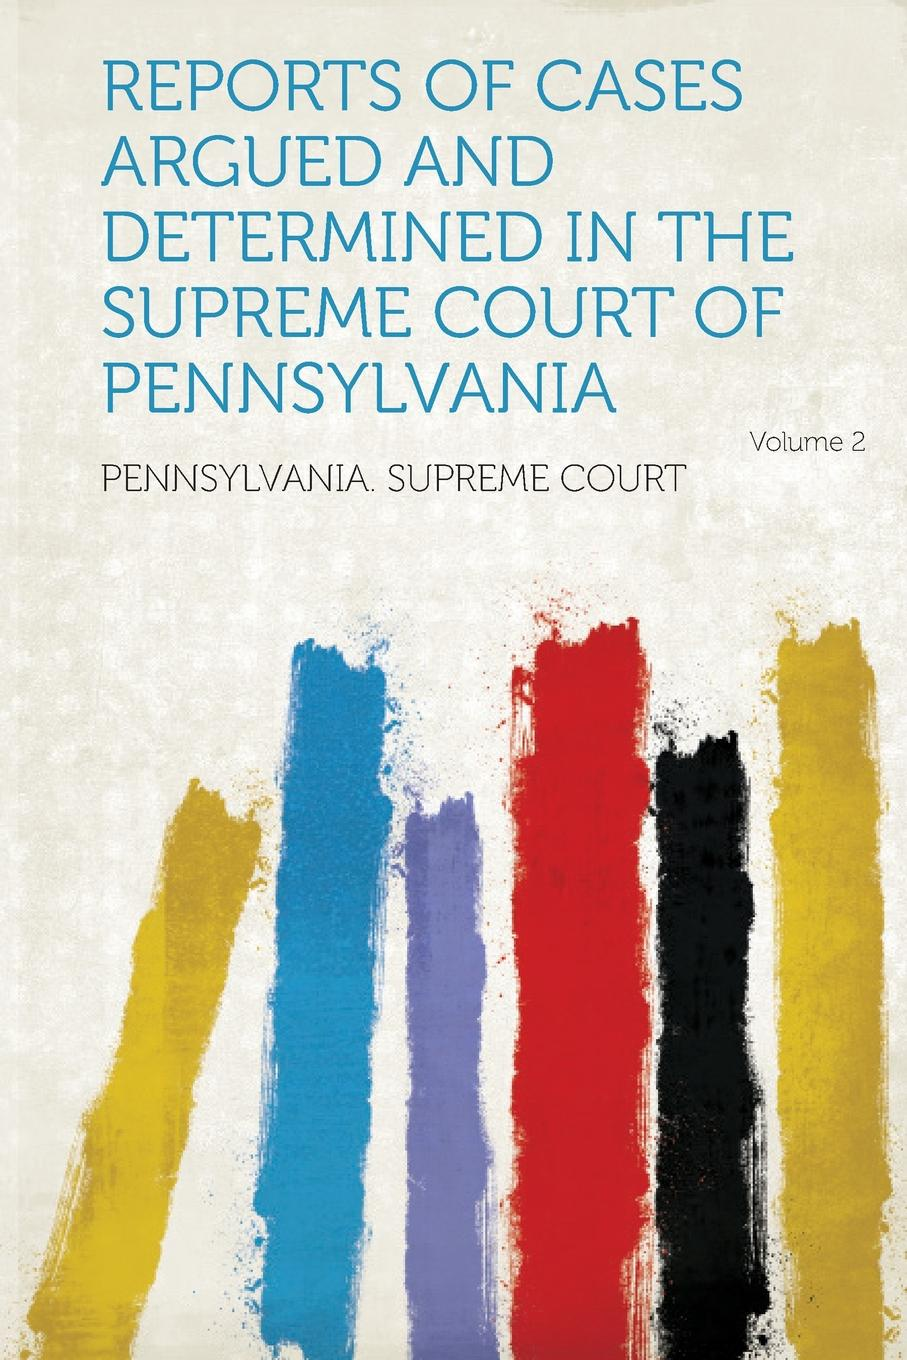 Pennsylvania. Supreme Court Reports of Cases Argued and Determined in the Supreme Court of Pennsylvania Volume 2